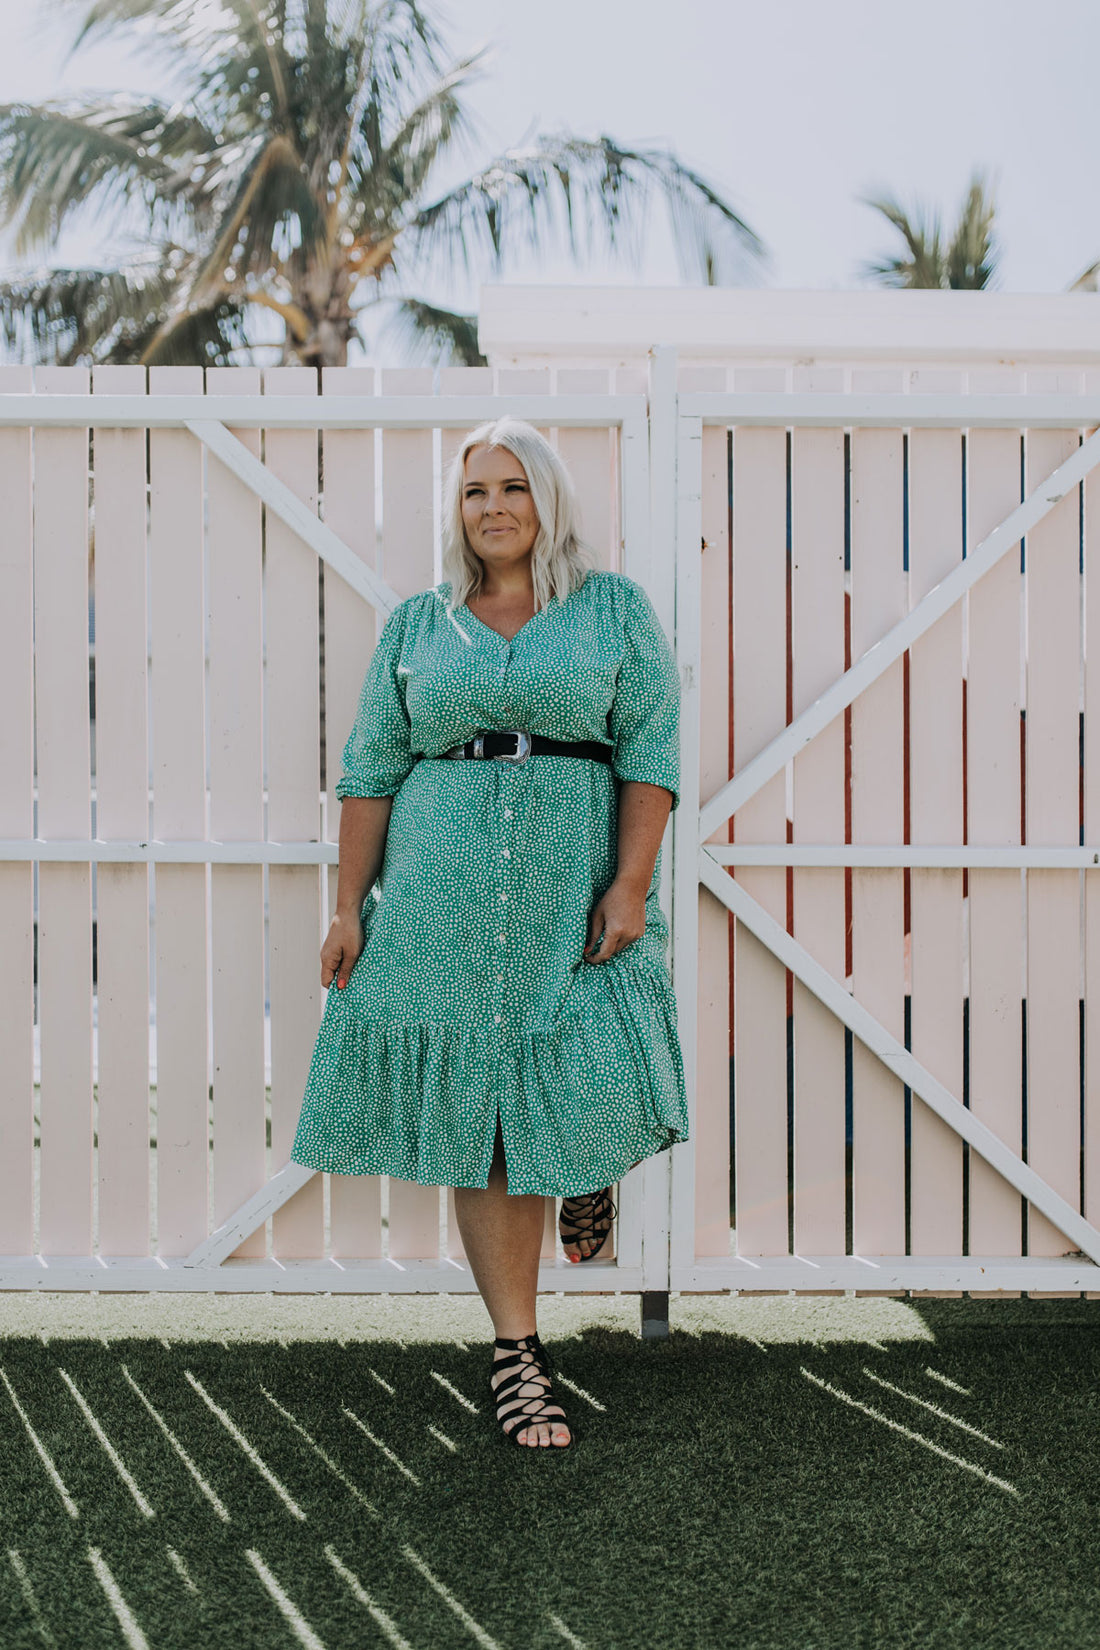 curvy woman with blonde hair wearing beautiful emerald green alila midi joy dress from ada + lou smiling while standing in front a light pink fence in the sunshine